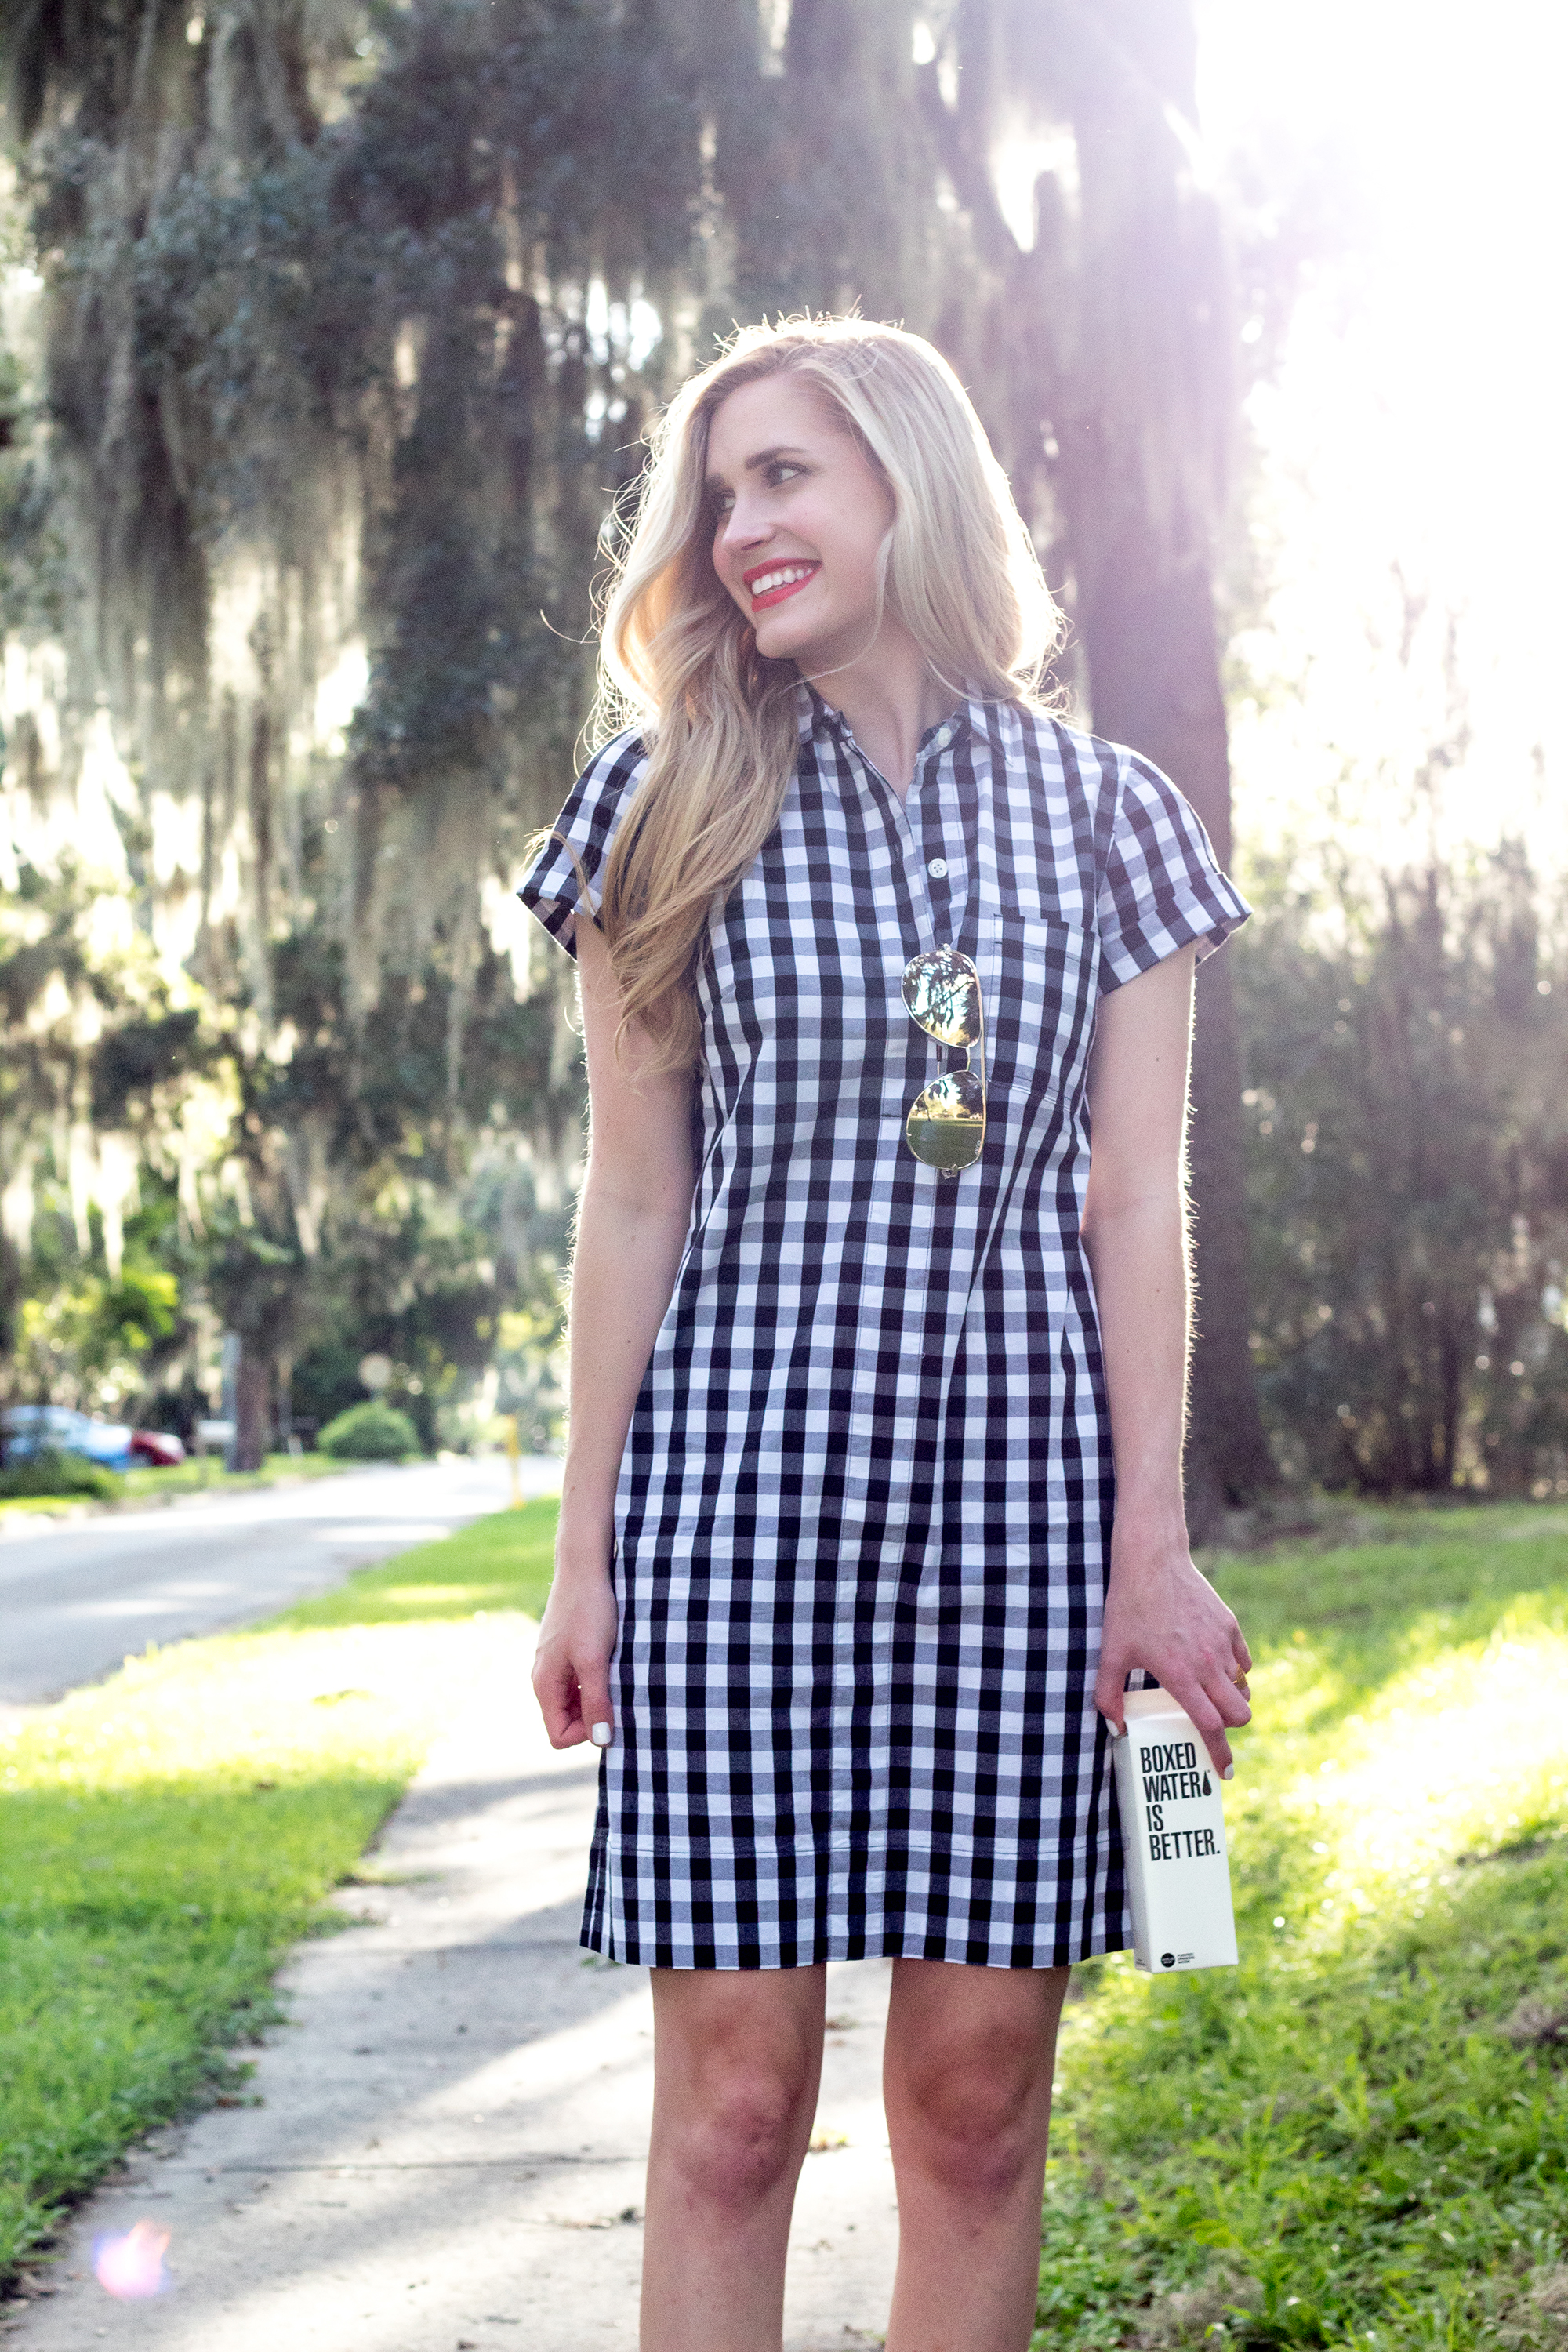 jcrew-j.crew-boxed-water-gingham-black-and-white-checkered-shirtdress-shirt-dress-ootd-styelled-elle-elisabeth-fashion-style-blogger-wiw-adidas-superstar-quay-australia-desi-perkins-04